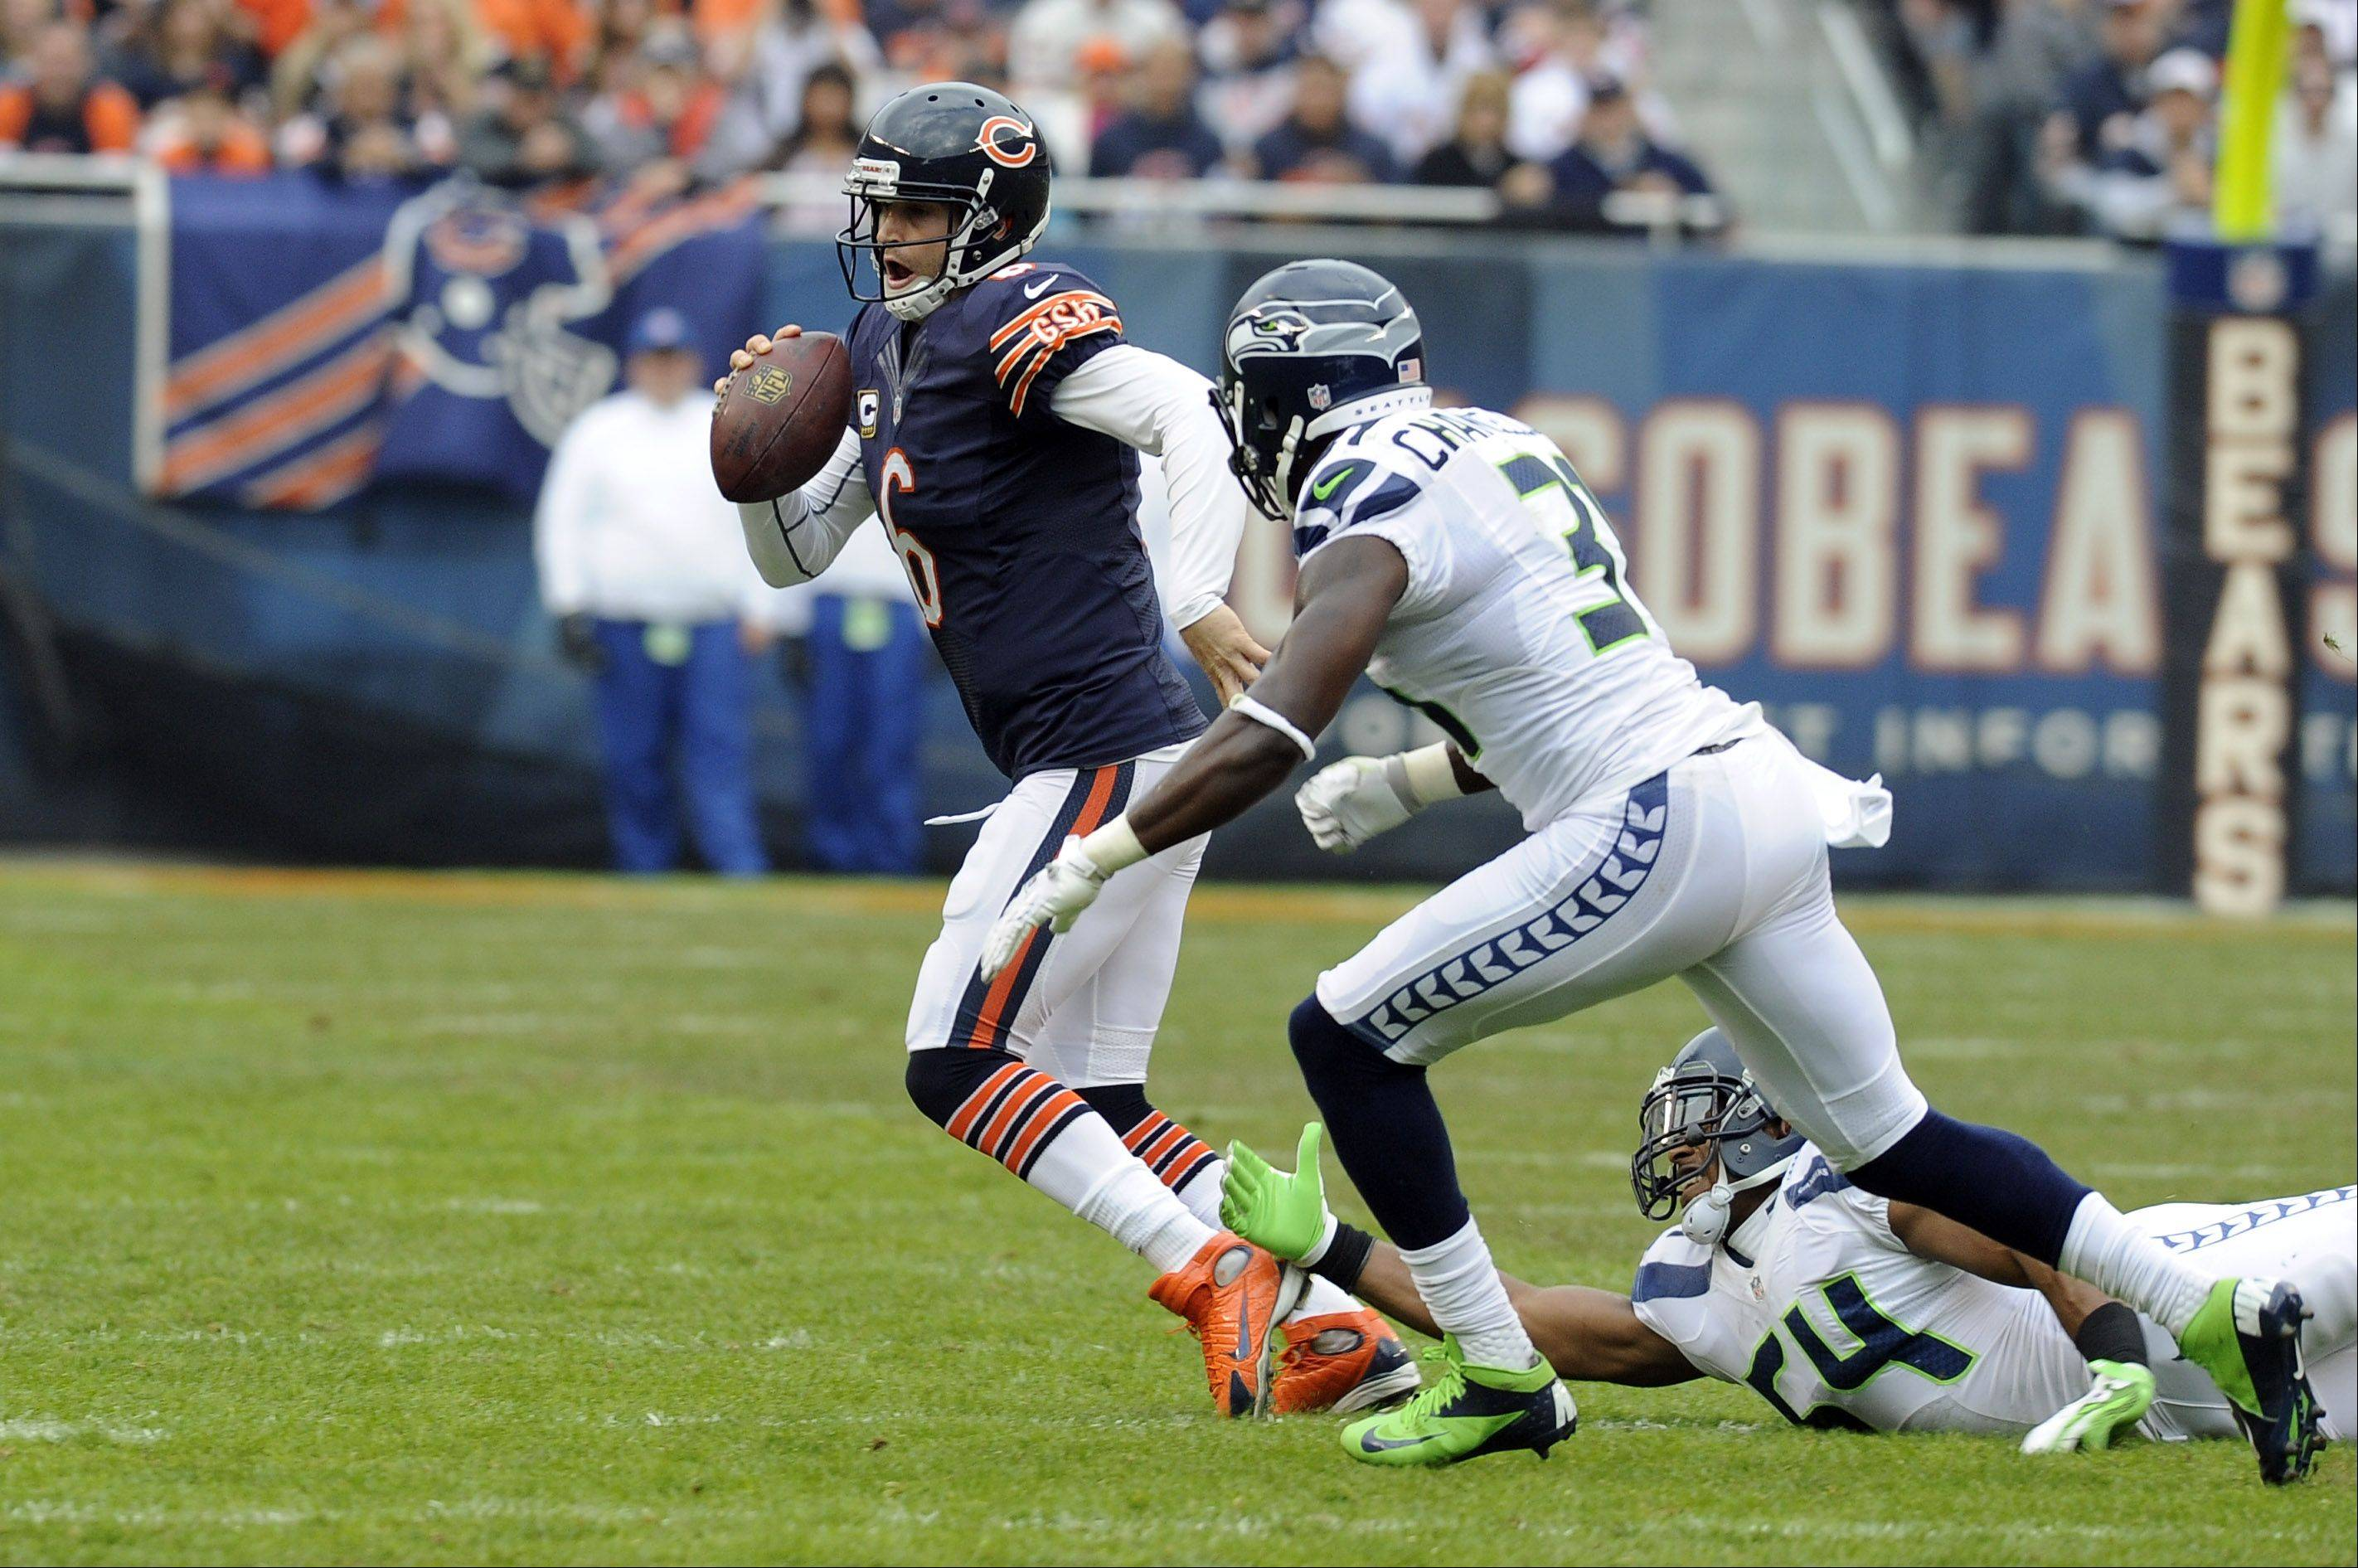 Bears quarterback Jay Cutler on the run in the first half from Seahawks Kam Chancellor as he gains yards and everyone holds their breath at Soldier Field in Chicago.